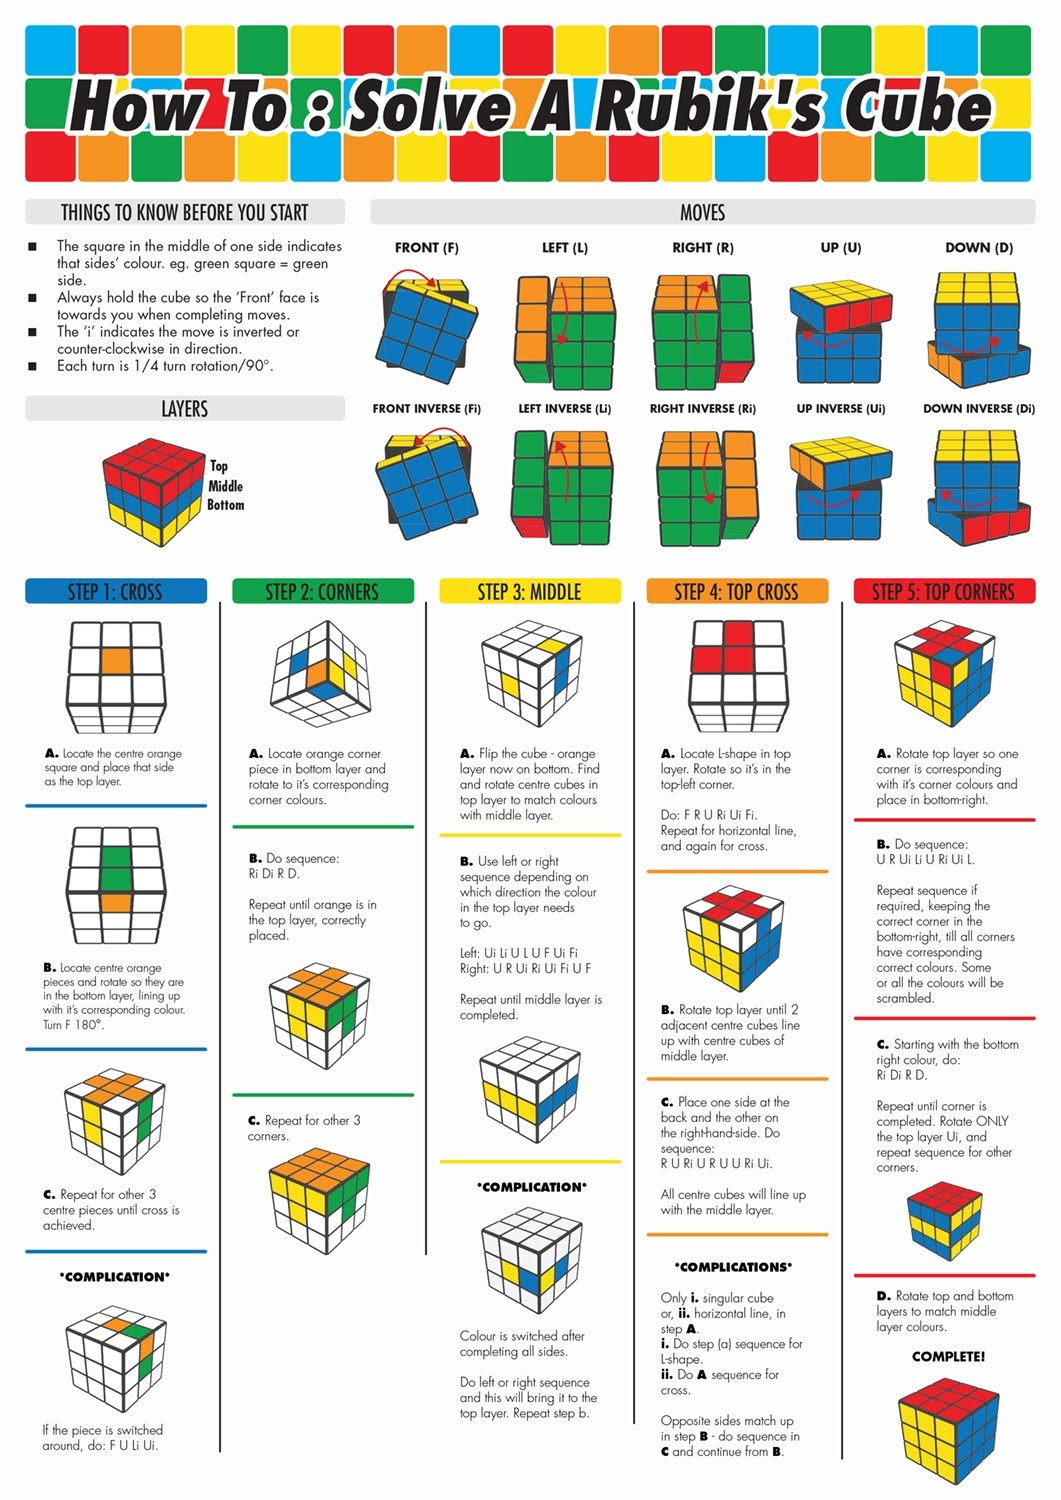 How To: Solve a Rubik's Cube